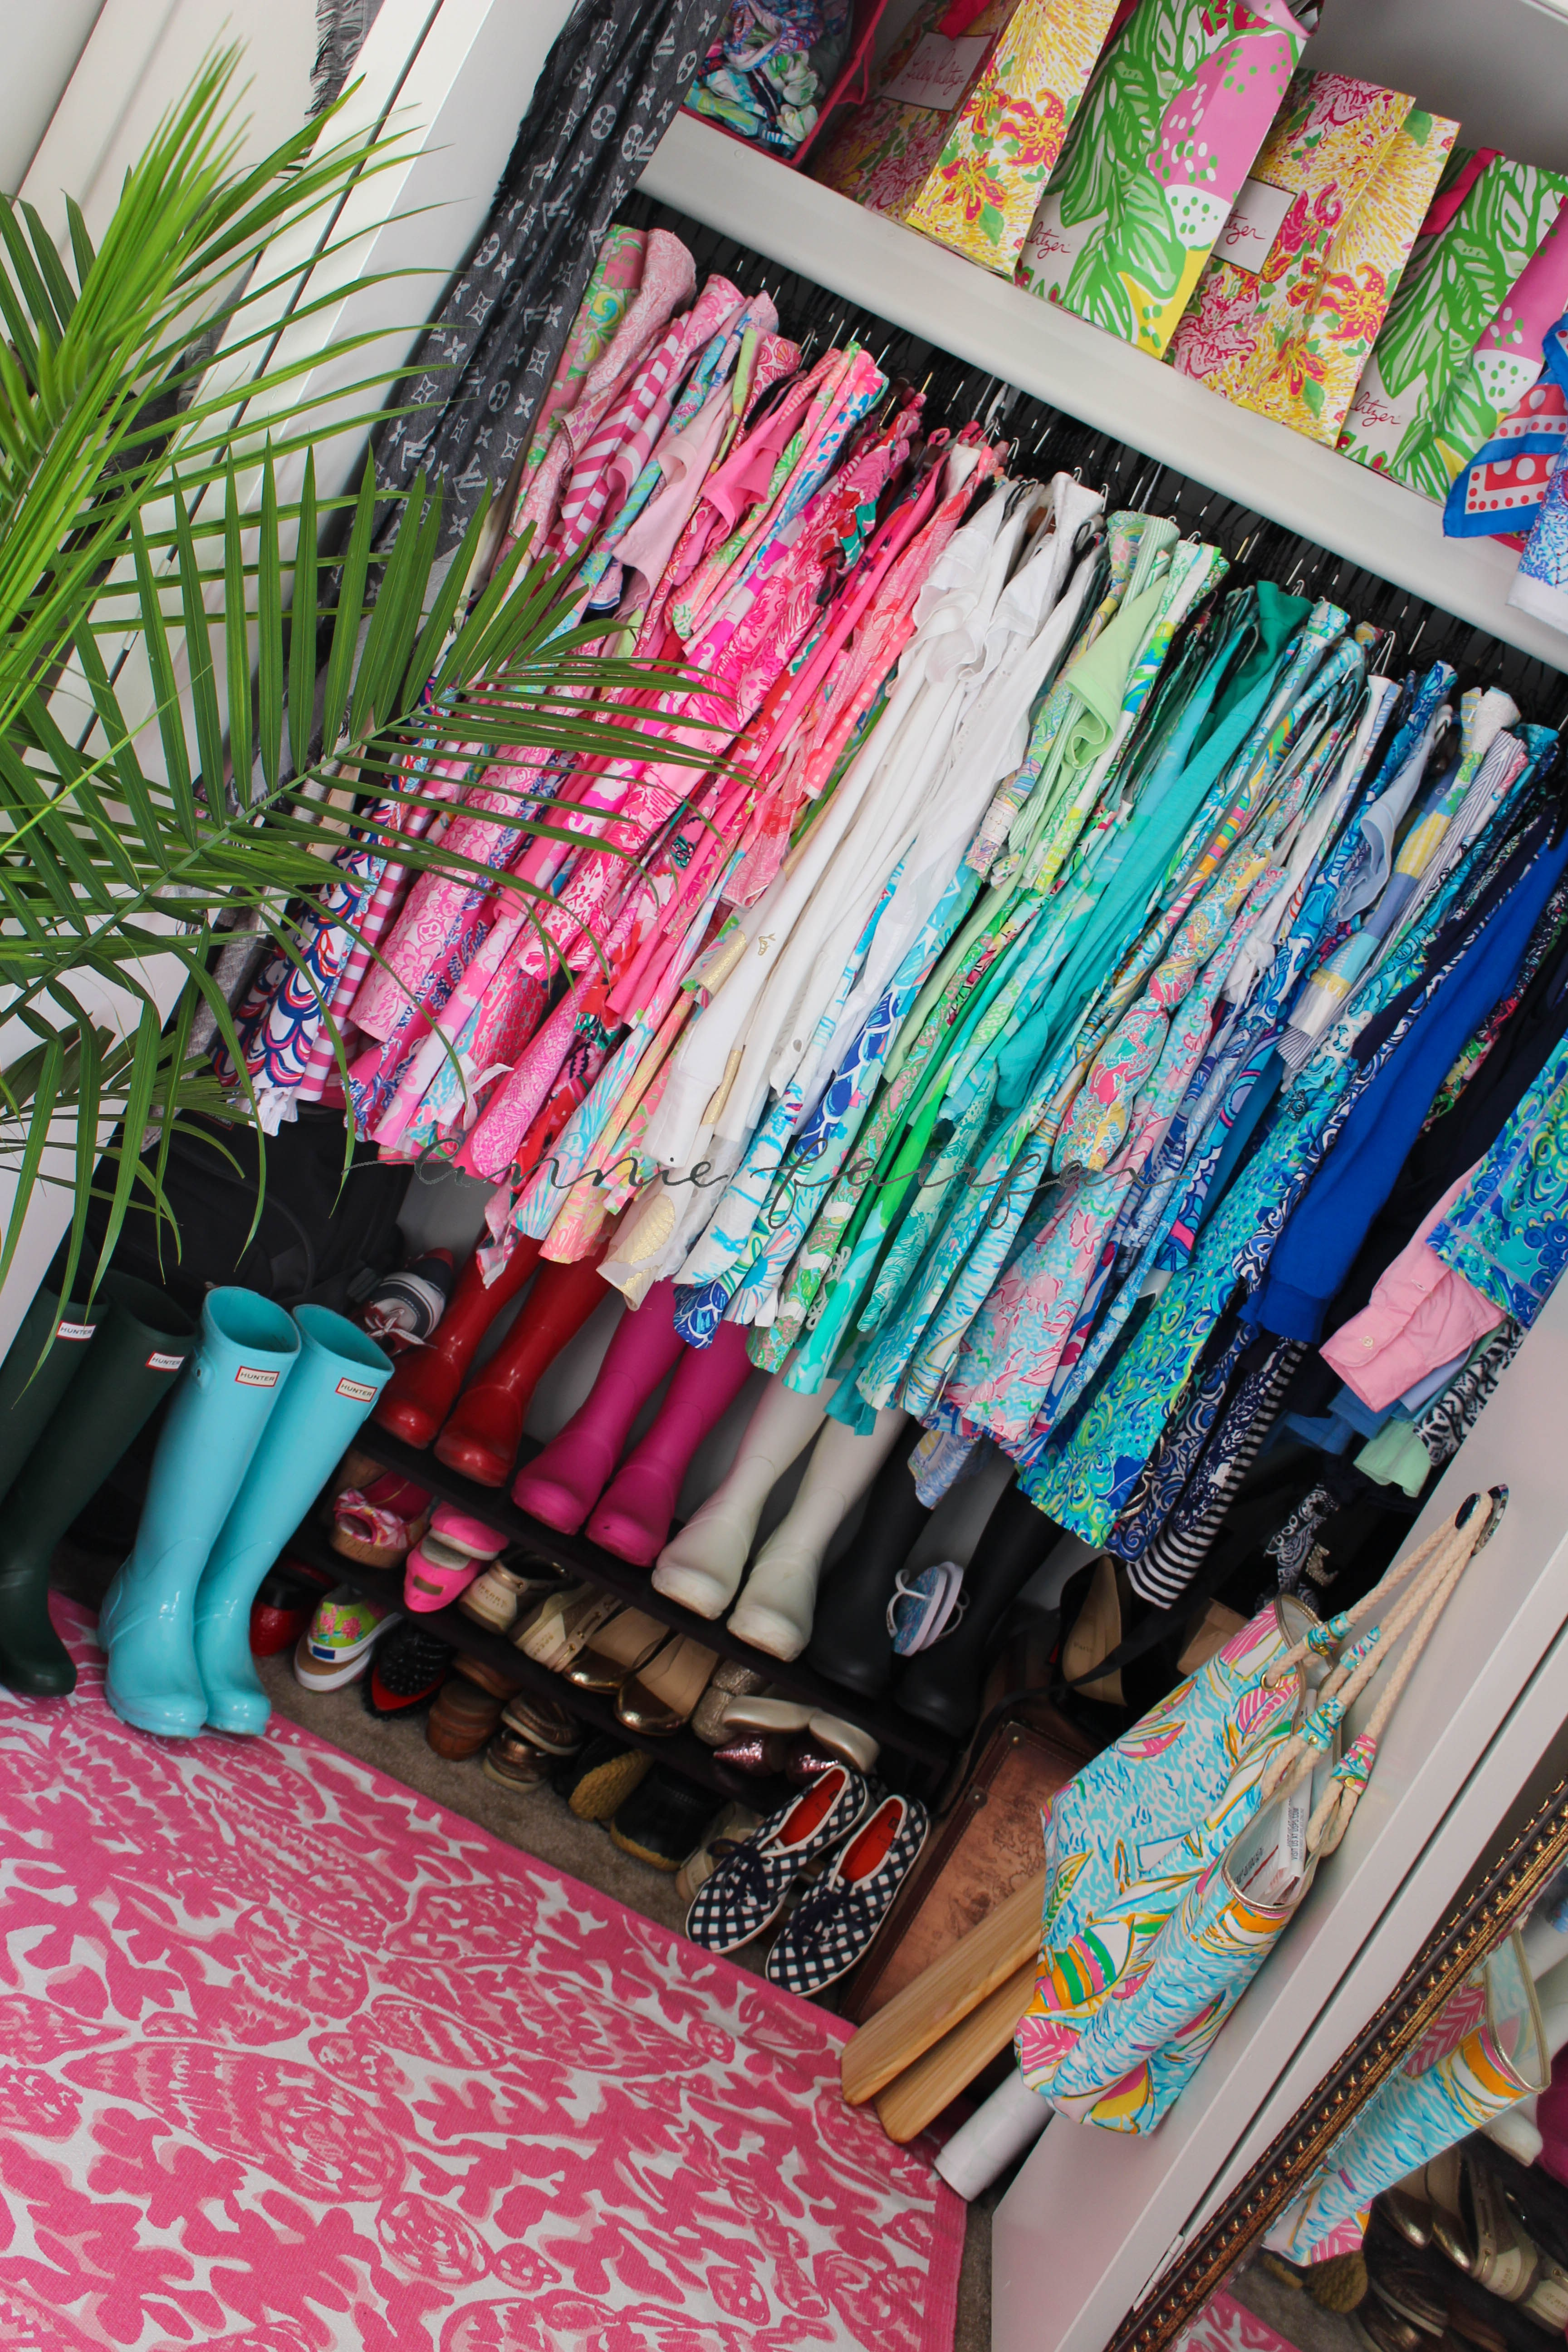 Lilly Pulitzer Preppy Summer Closet Hunter Boots Kate Spade Nautical J. Crew J. McLaughlin Kiel James Patrick Hunter Boots Collection